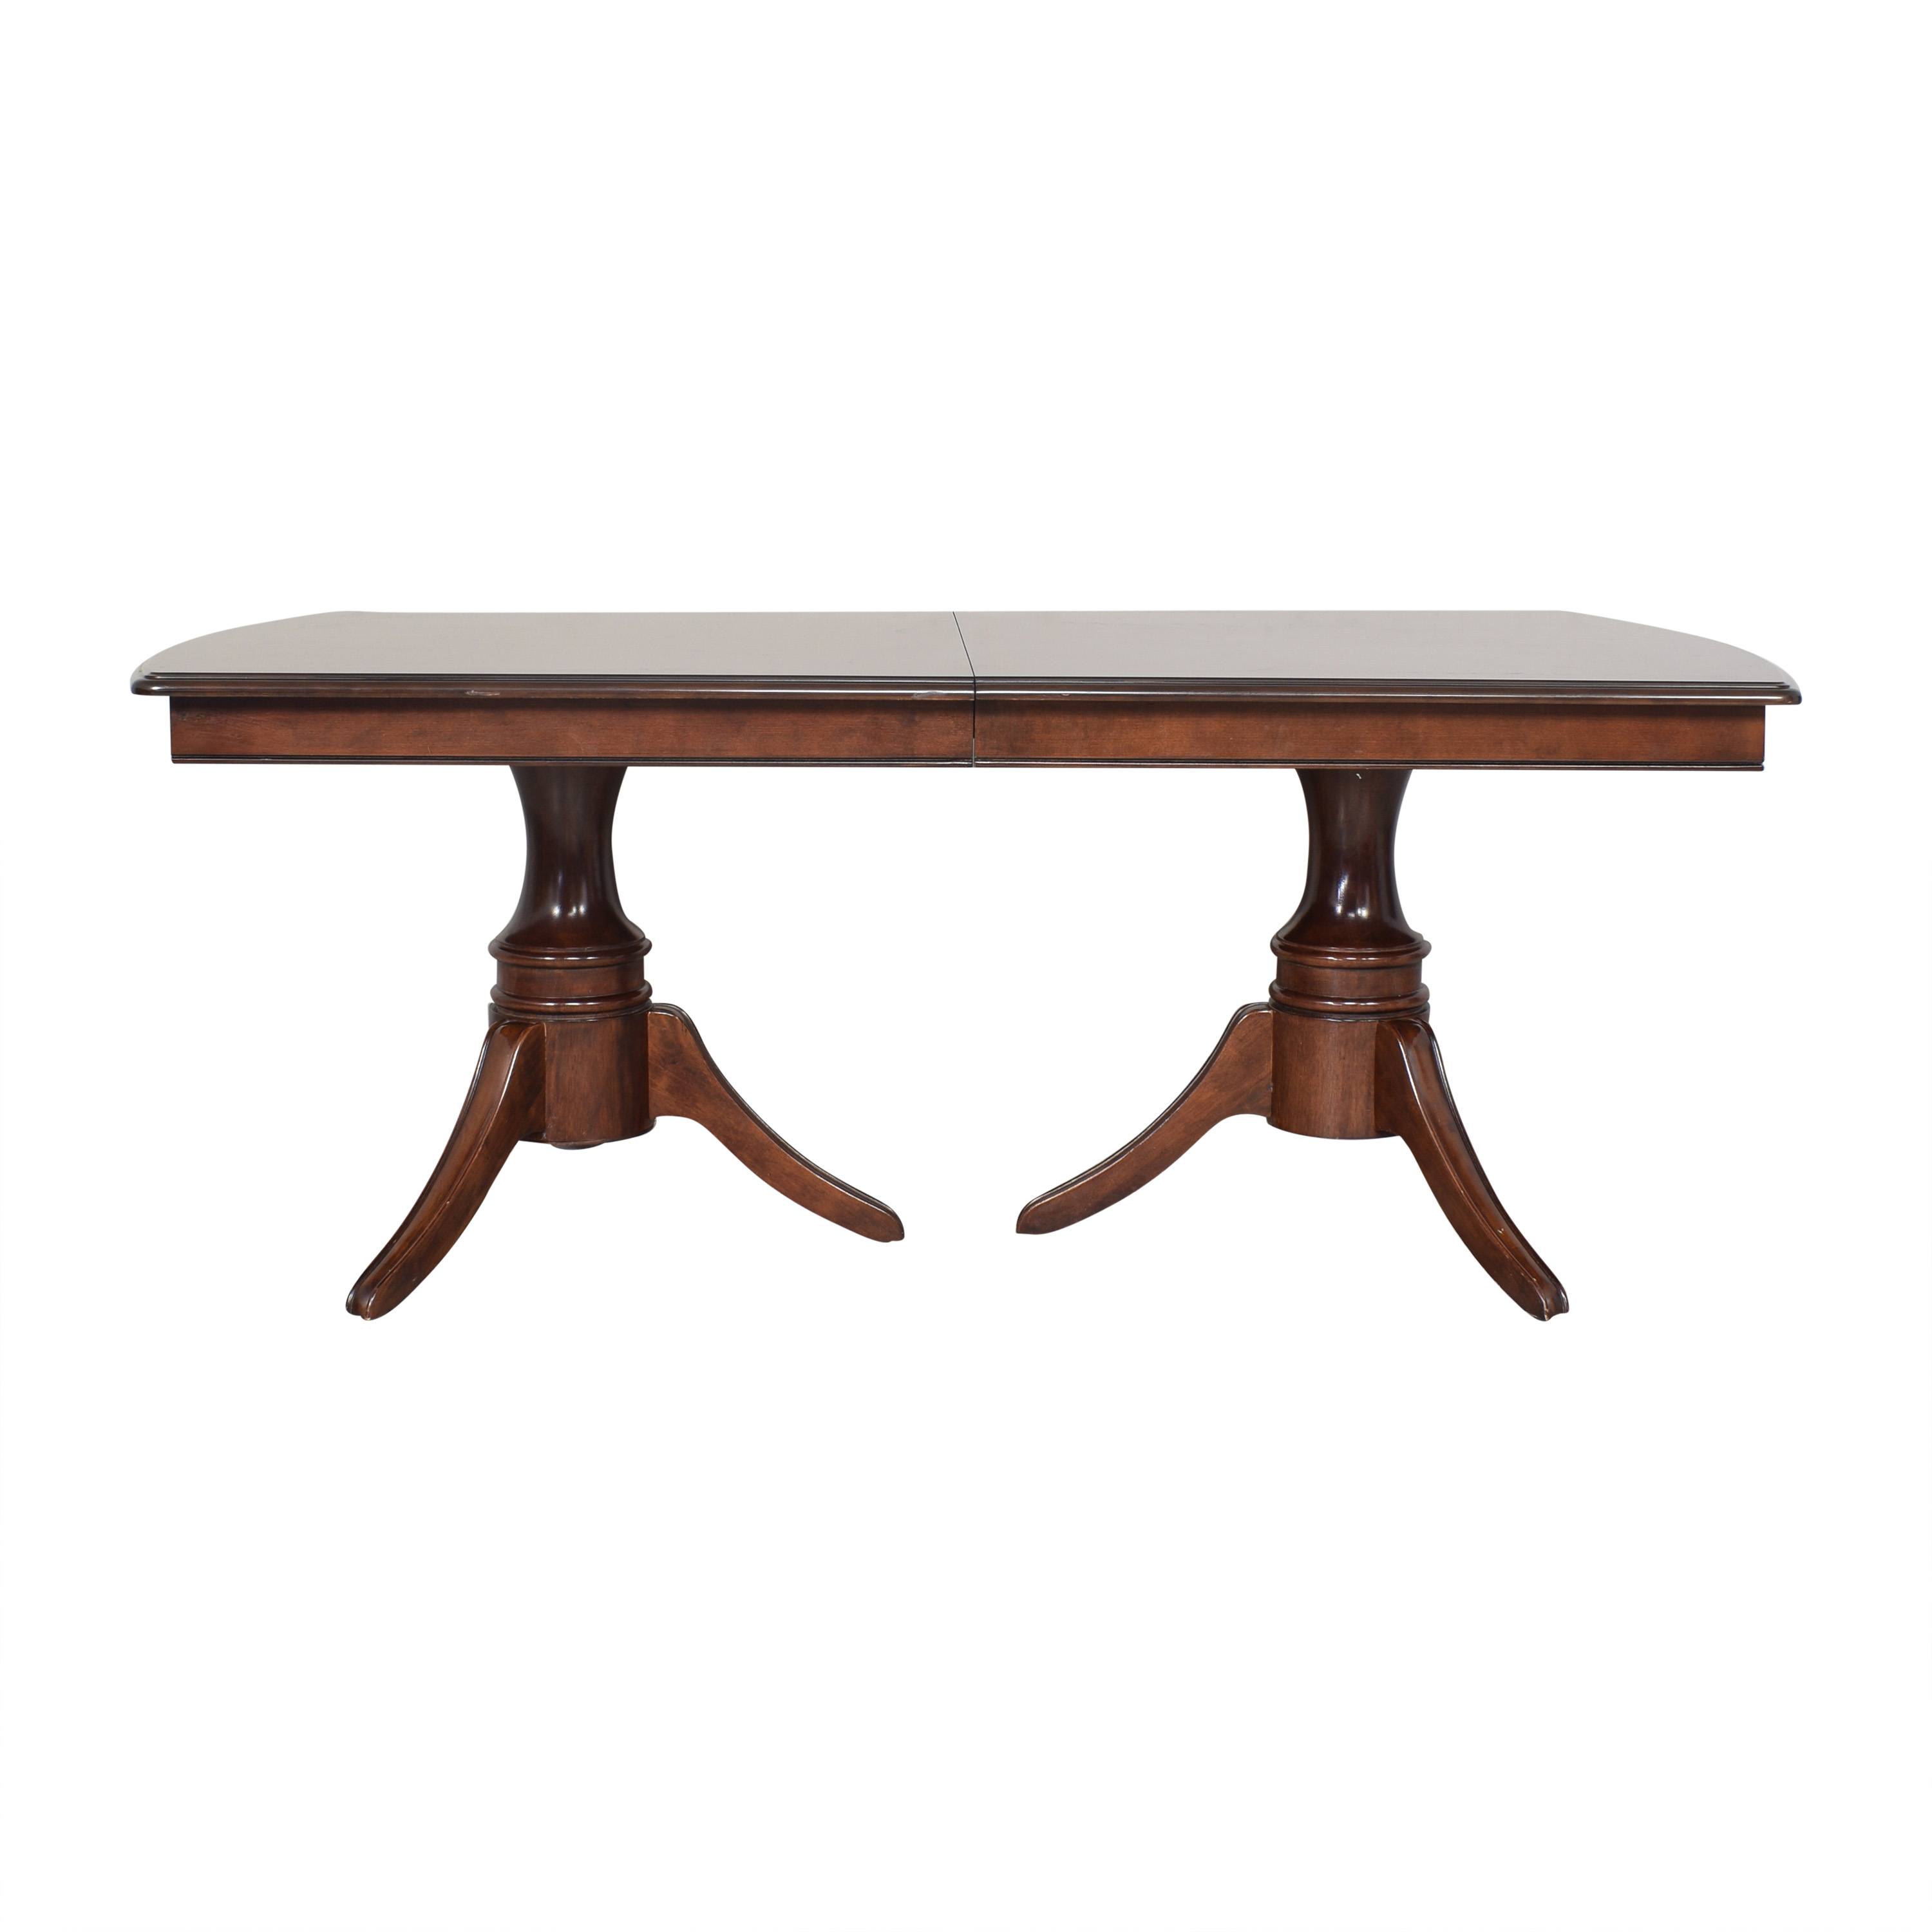 Raymour & Flanigan Raymour & Flanigan Extendable Dining Table used